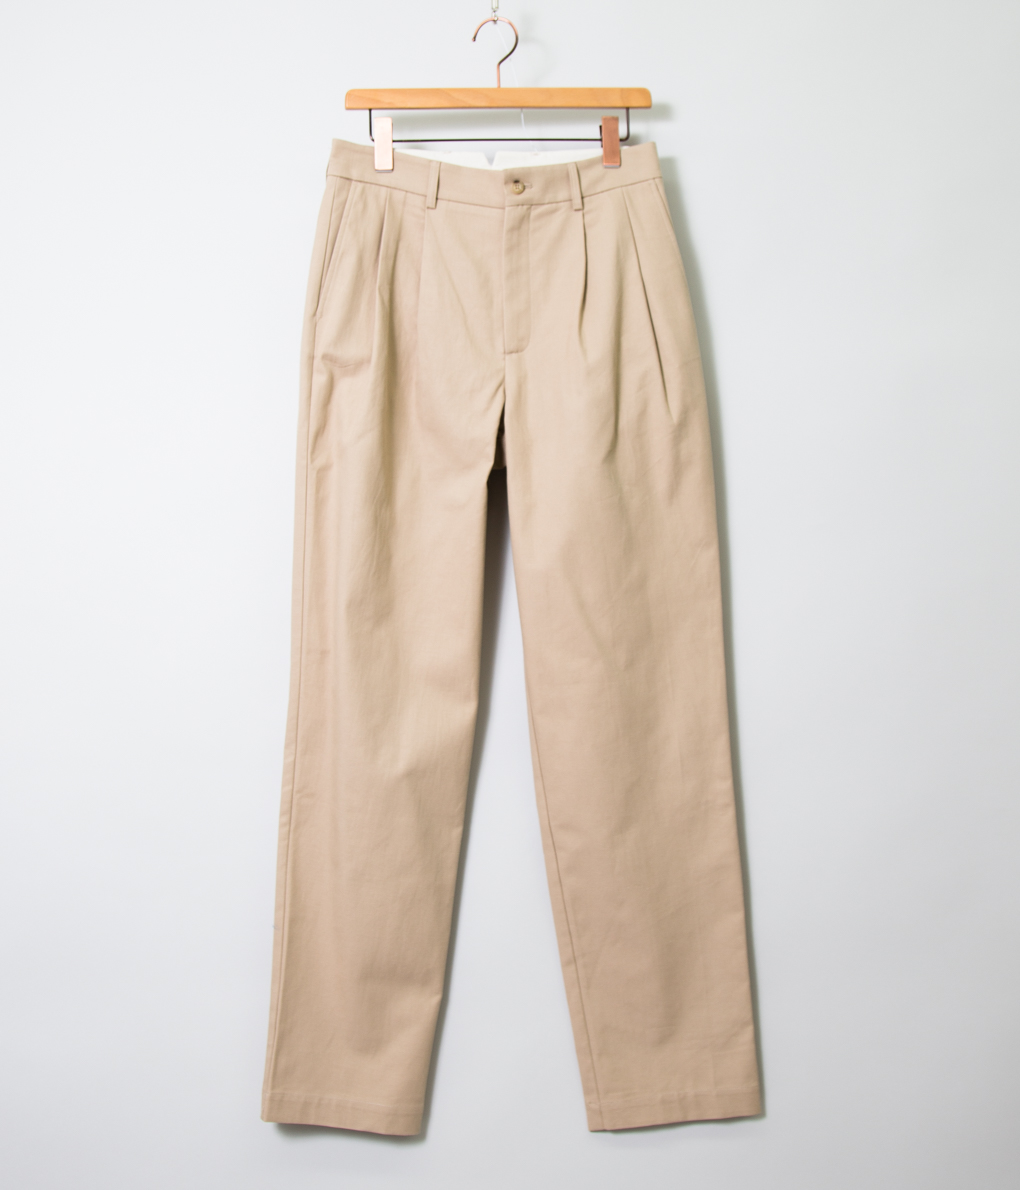 DE BONNE FACTURE デボンファクチュール ORGANIC COTTON TWILL Two Pleat Large Trousers